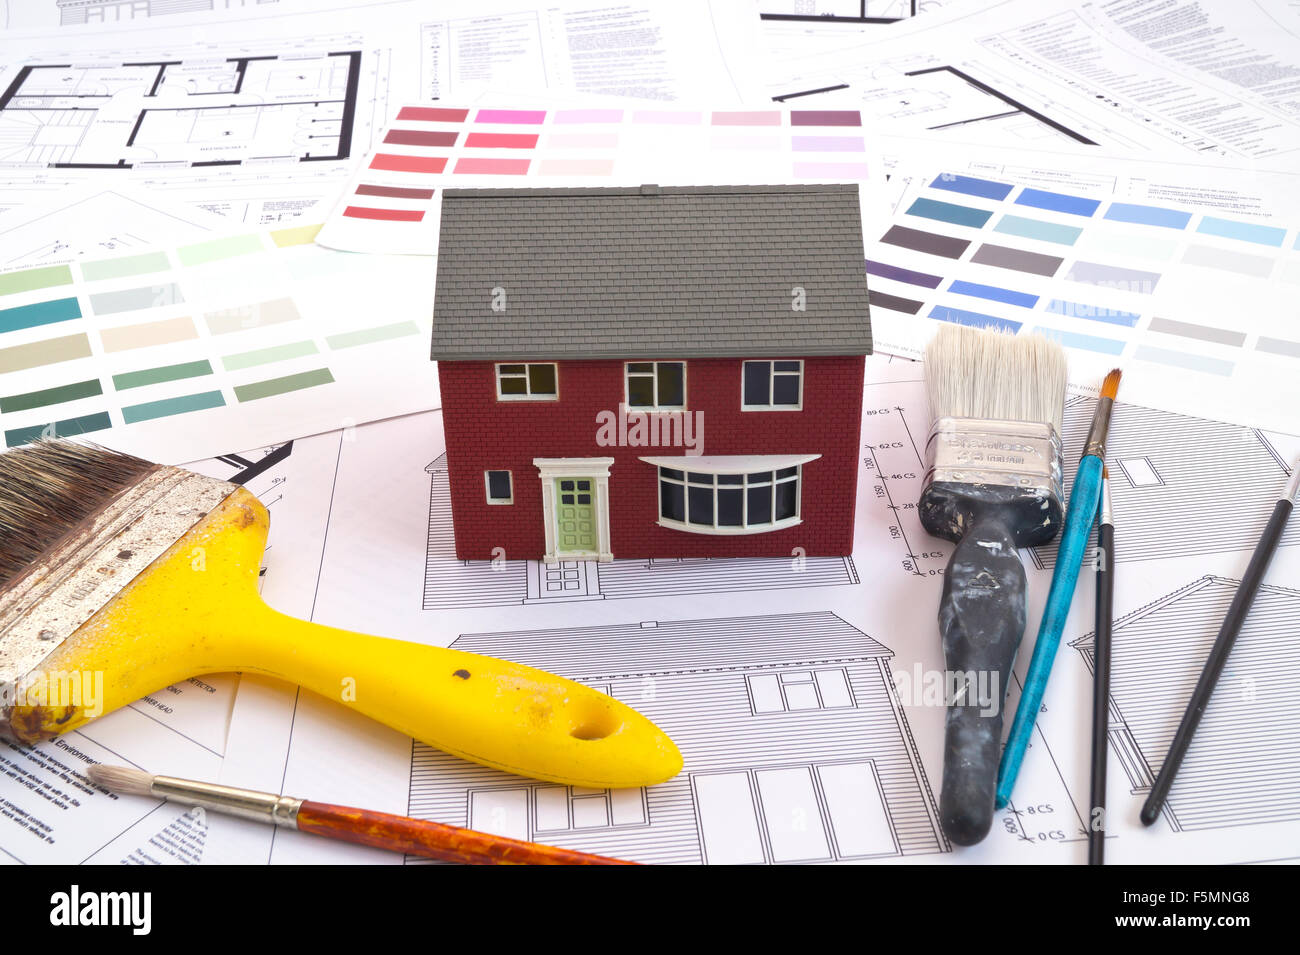 House and building plans or blueprint - Stock Image